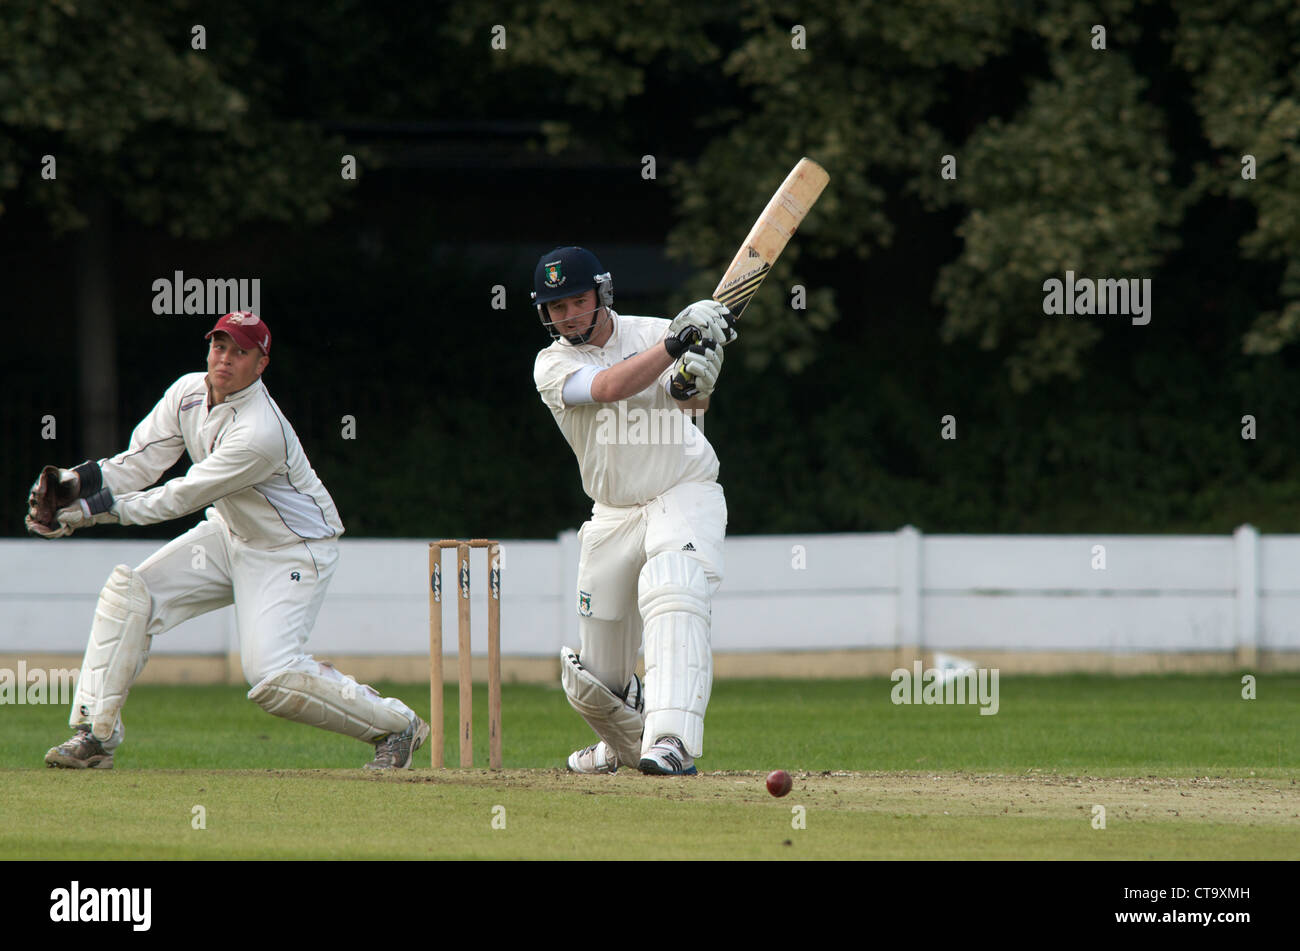 batsman  in action during an amateur cricket match between didsbury and oxton in the cheshire county premier league - Stock Image